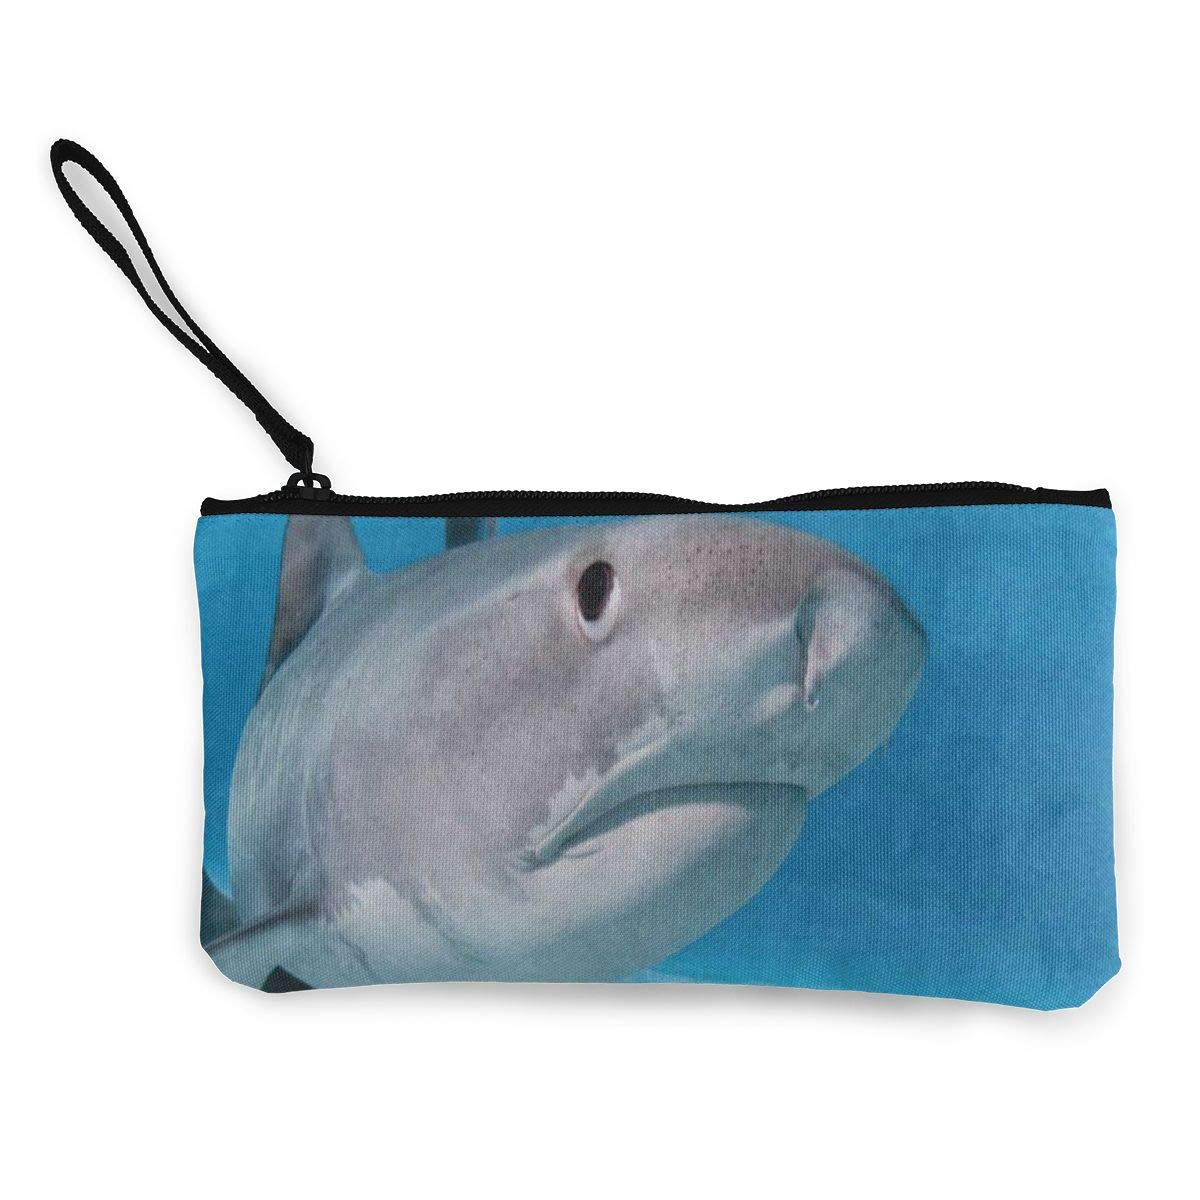 sd4r5y3hg Canvas Coin Purse Shark Swimming Ocean Customs Zipper Pouch Wallet For Cash Bank Car Passport